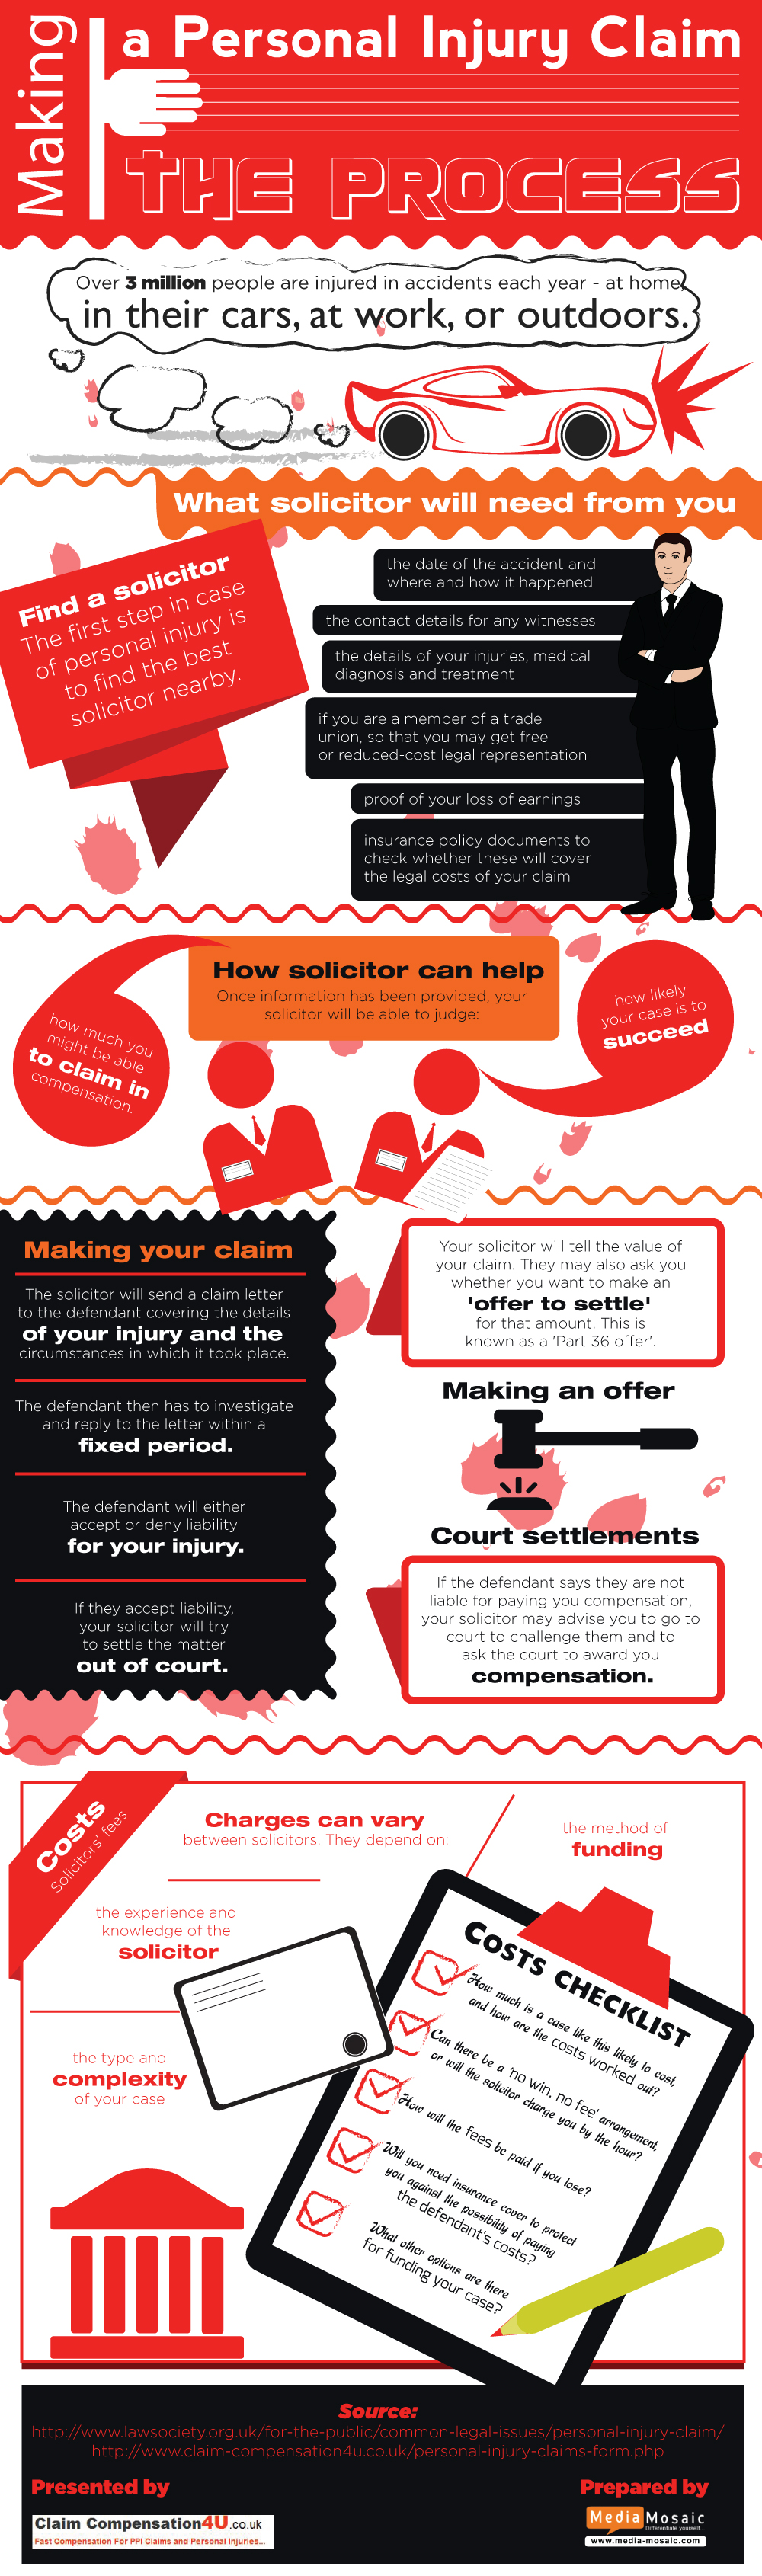 Making a Personal Injury Claim : The Process [Info Graphic